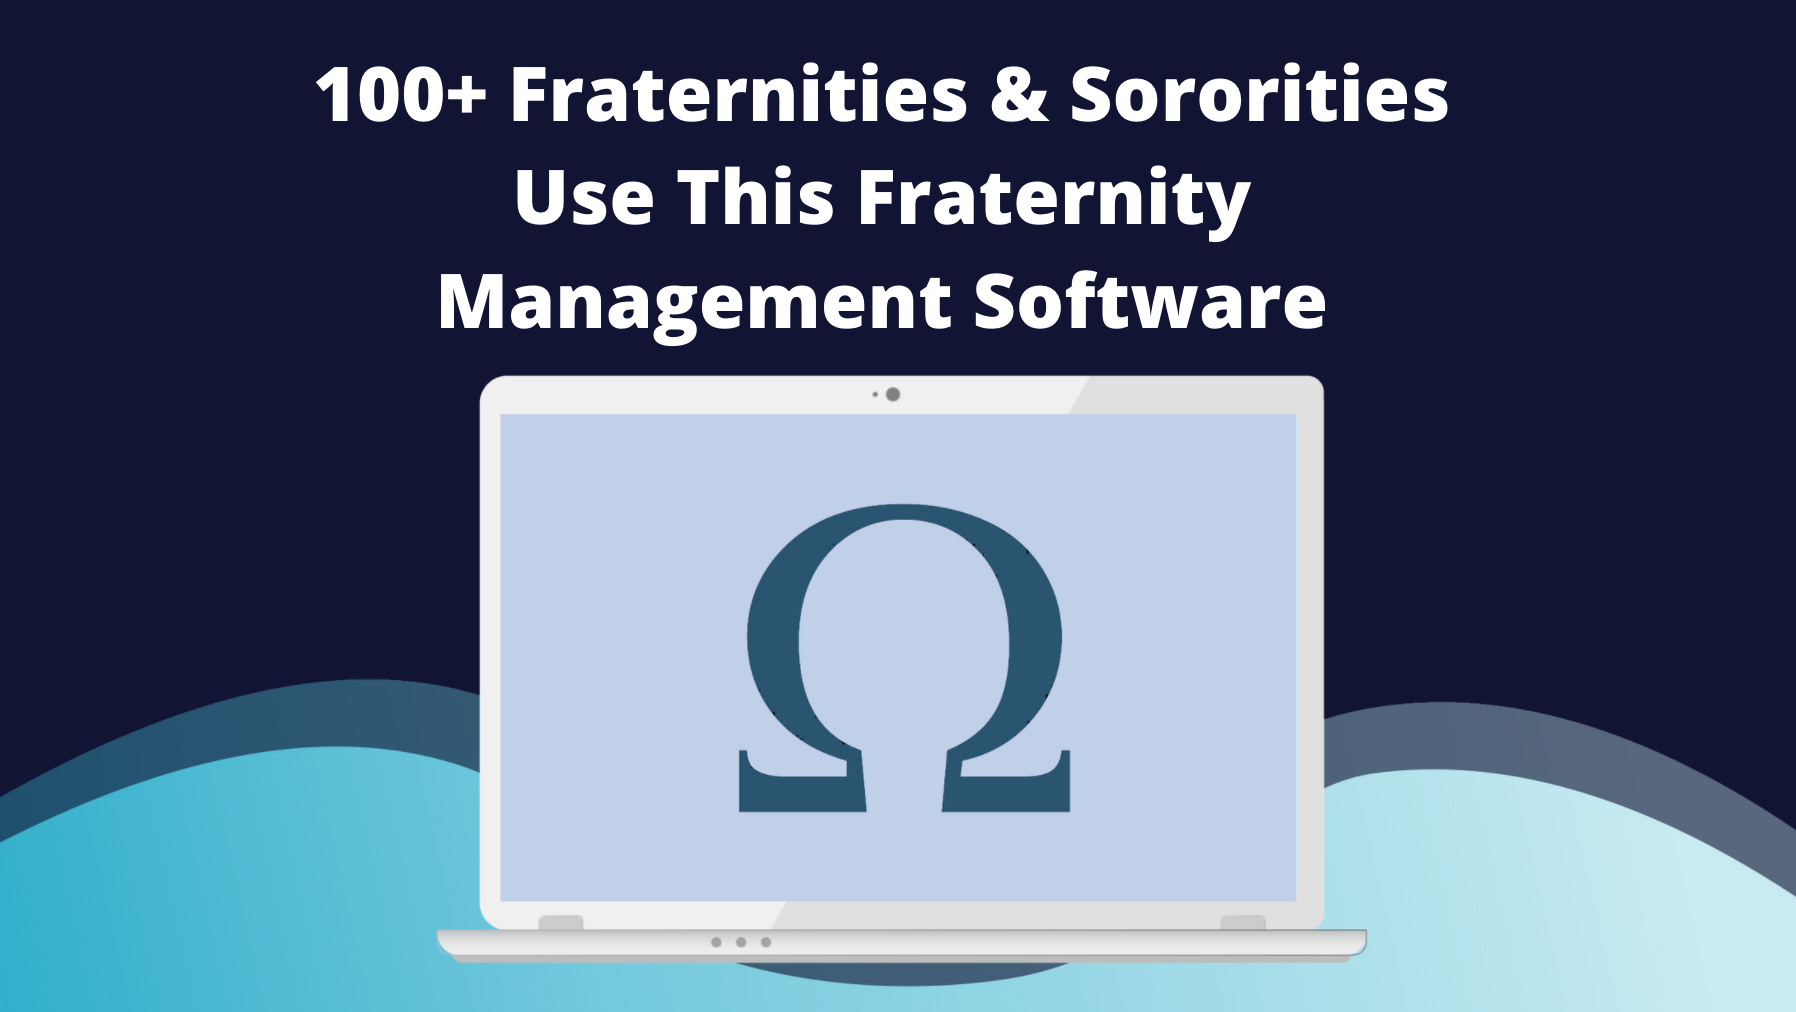 fraternity management software